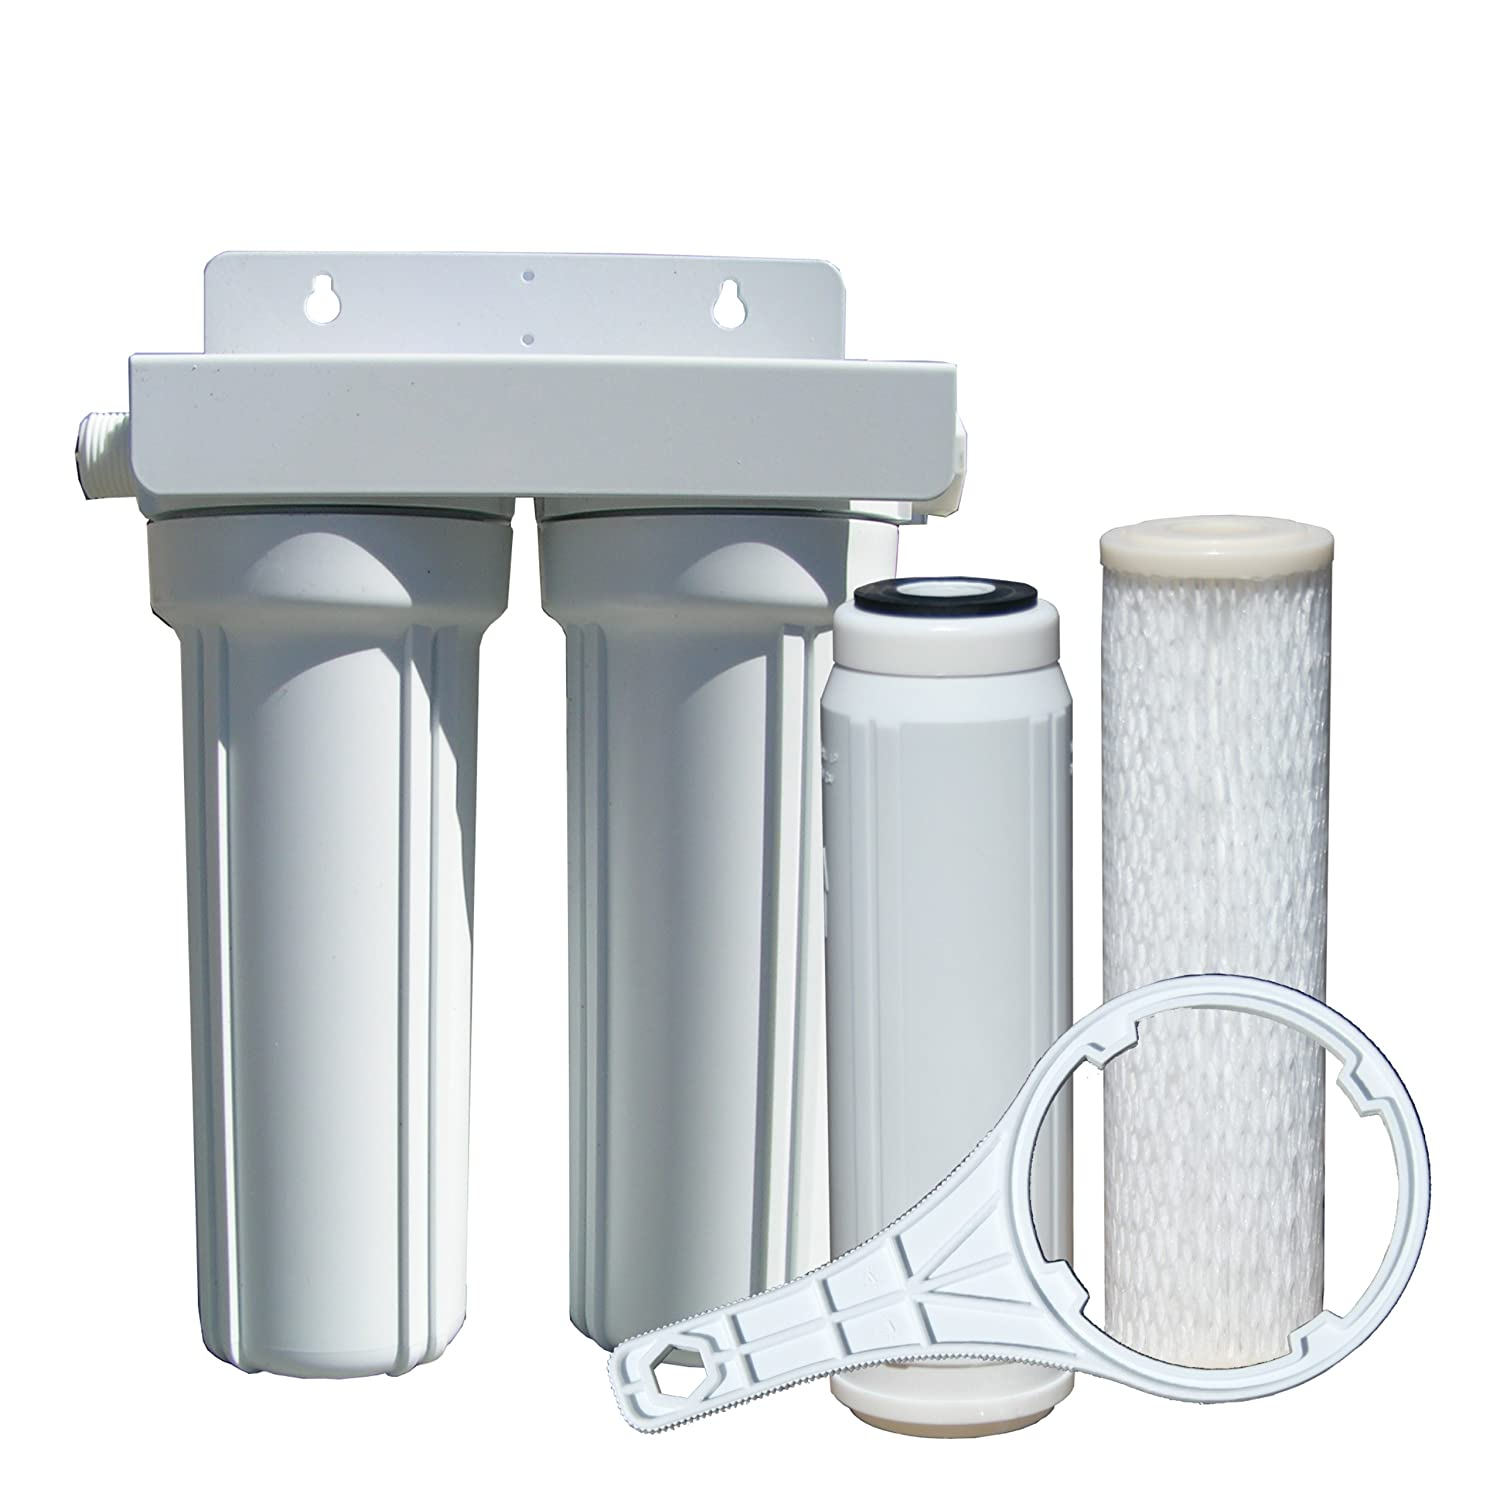 Amazon.com: Watts 520022 RV/Boat Duo Exterior Water Filter with ...